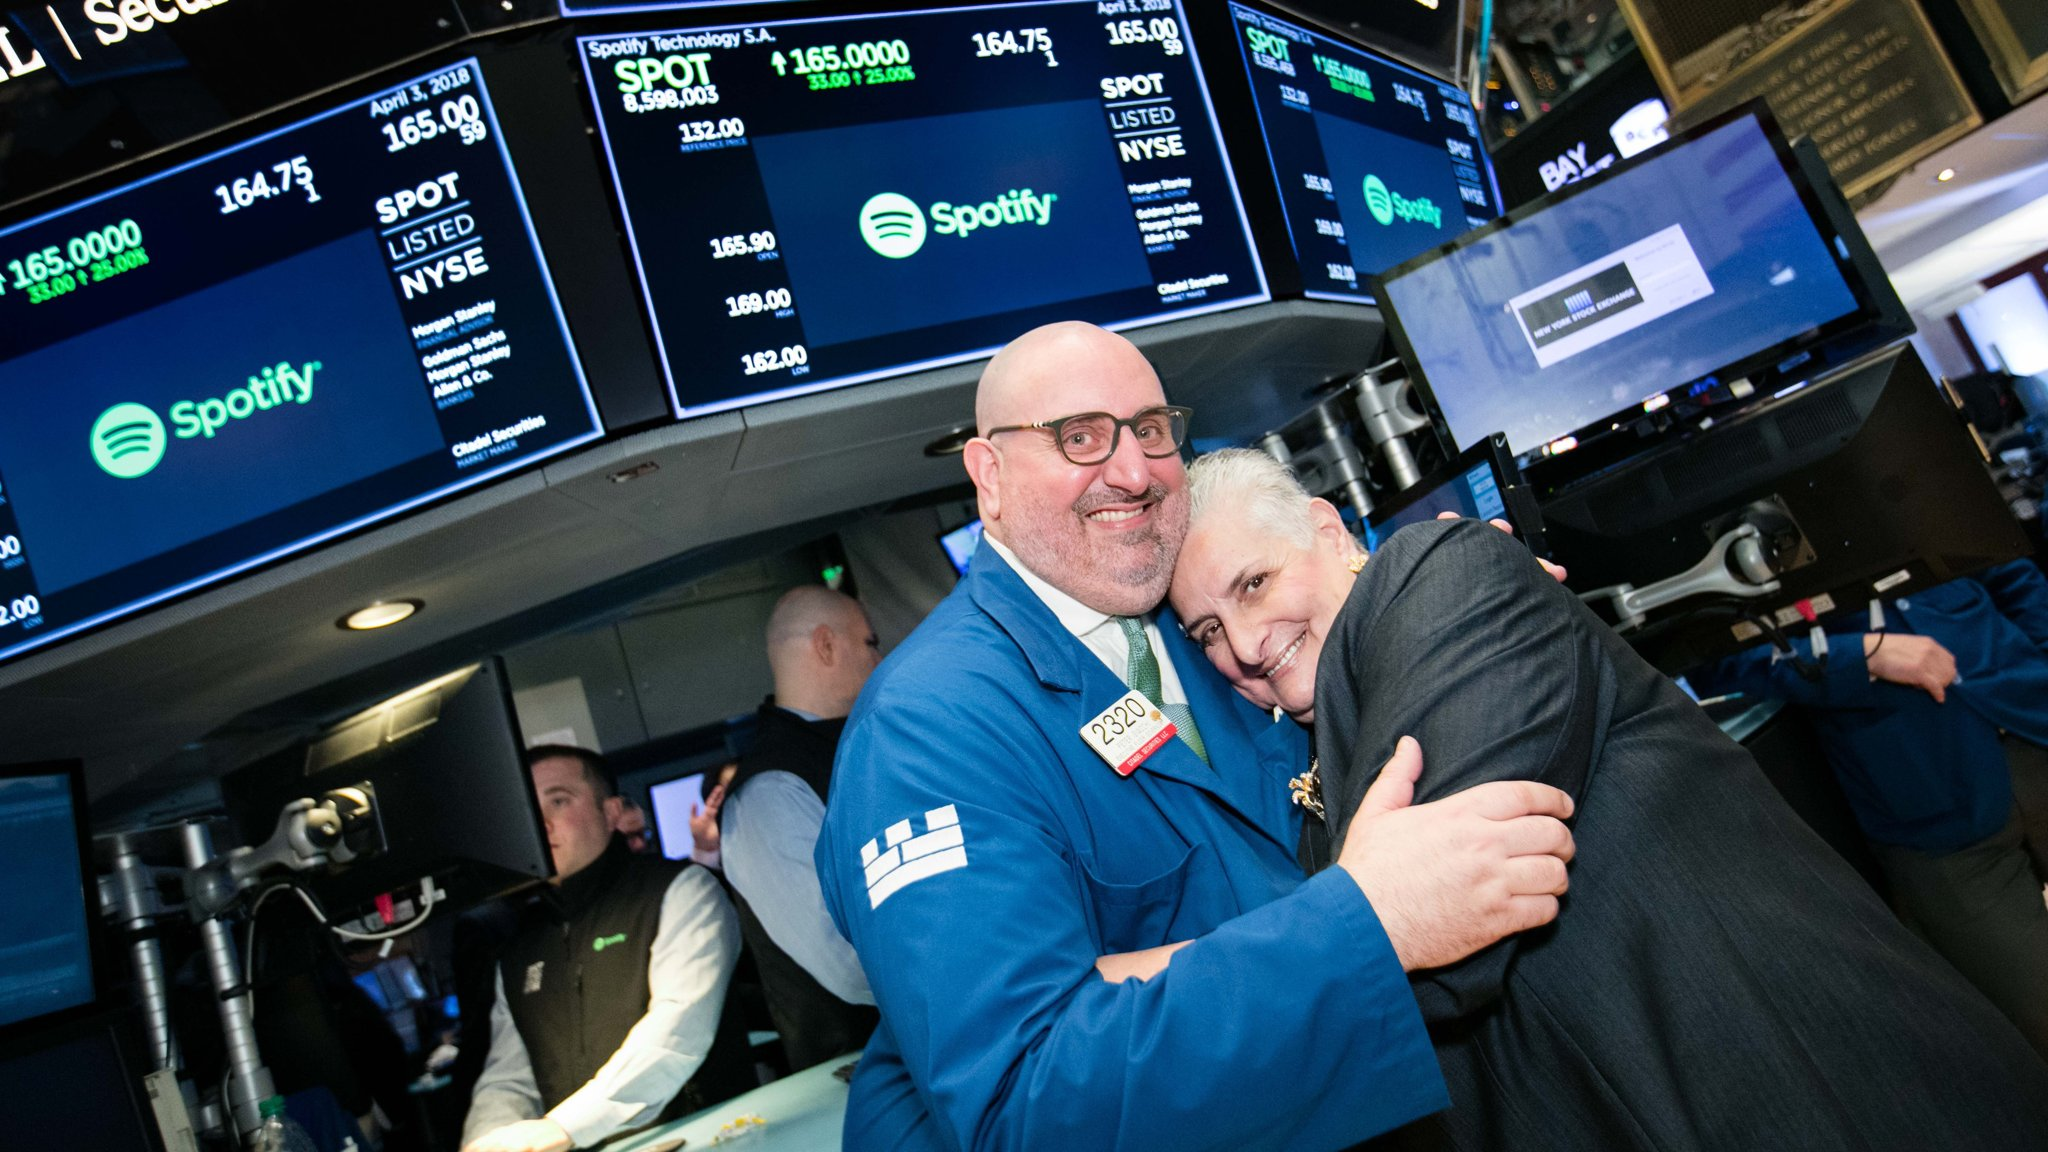 Trader who has waited his entire career for an Uber IPO